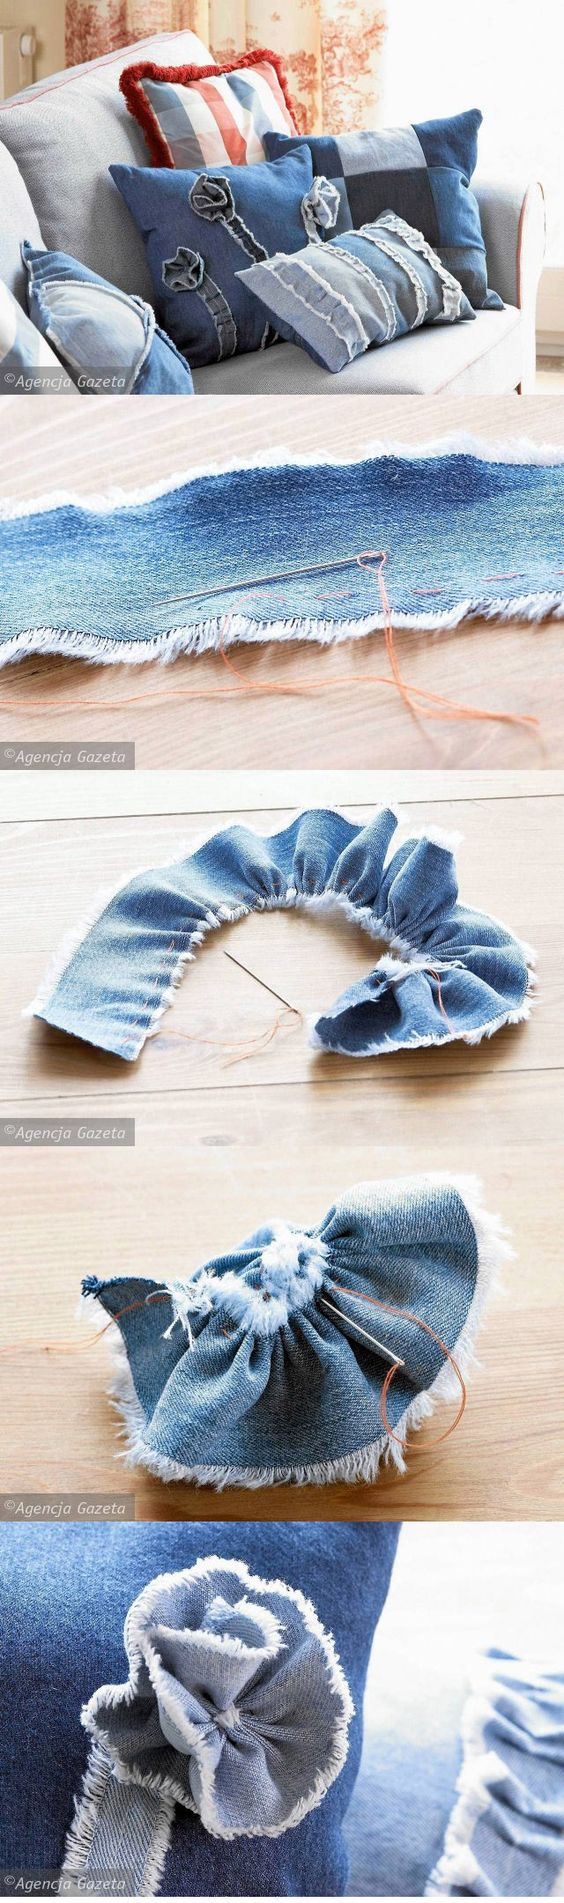 Denim Flower from Cztery Kąty - use 3-4 cm strip of denim; sew a running stich along one long edge; gently and evenly gather the fabric, forming the flower; sew through the flower to secure fabric in place; apply to your pillows, favourite jeans, etc.